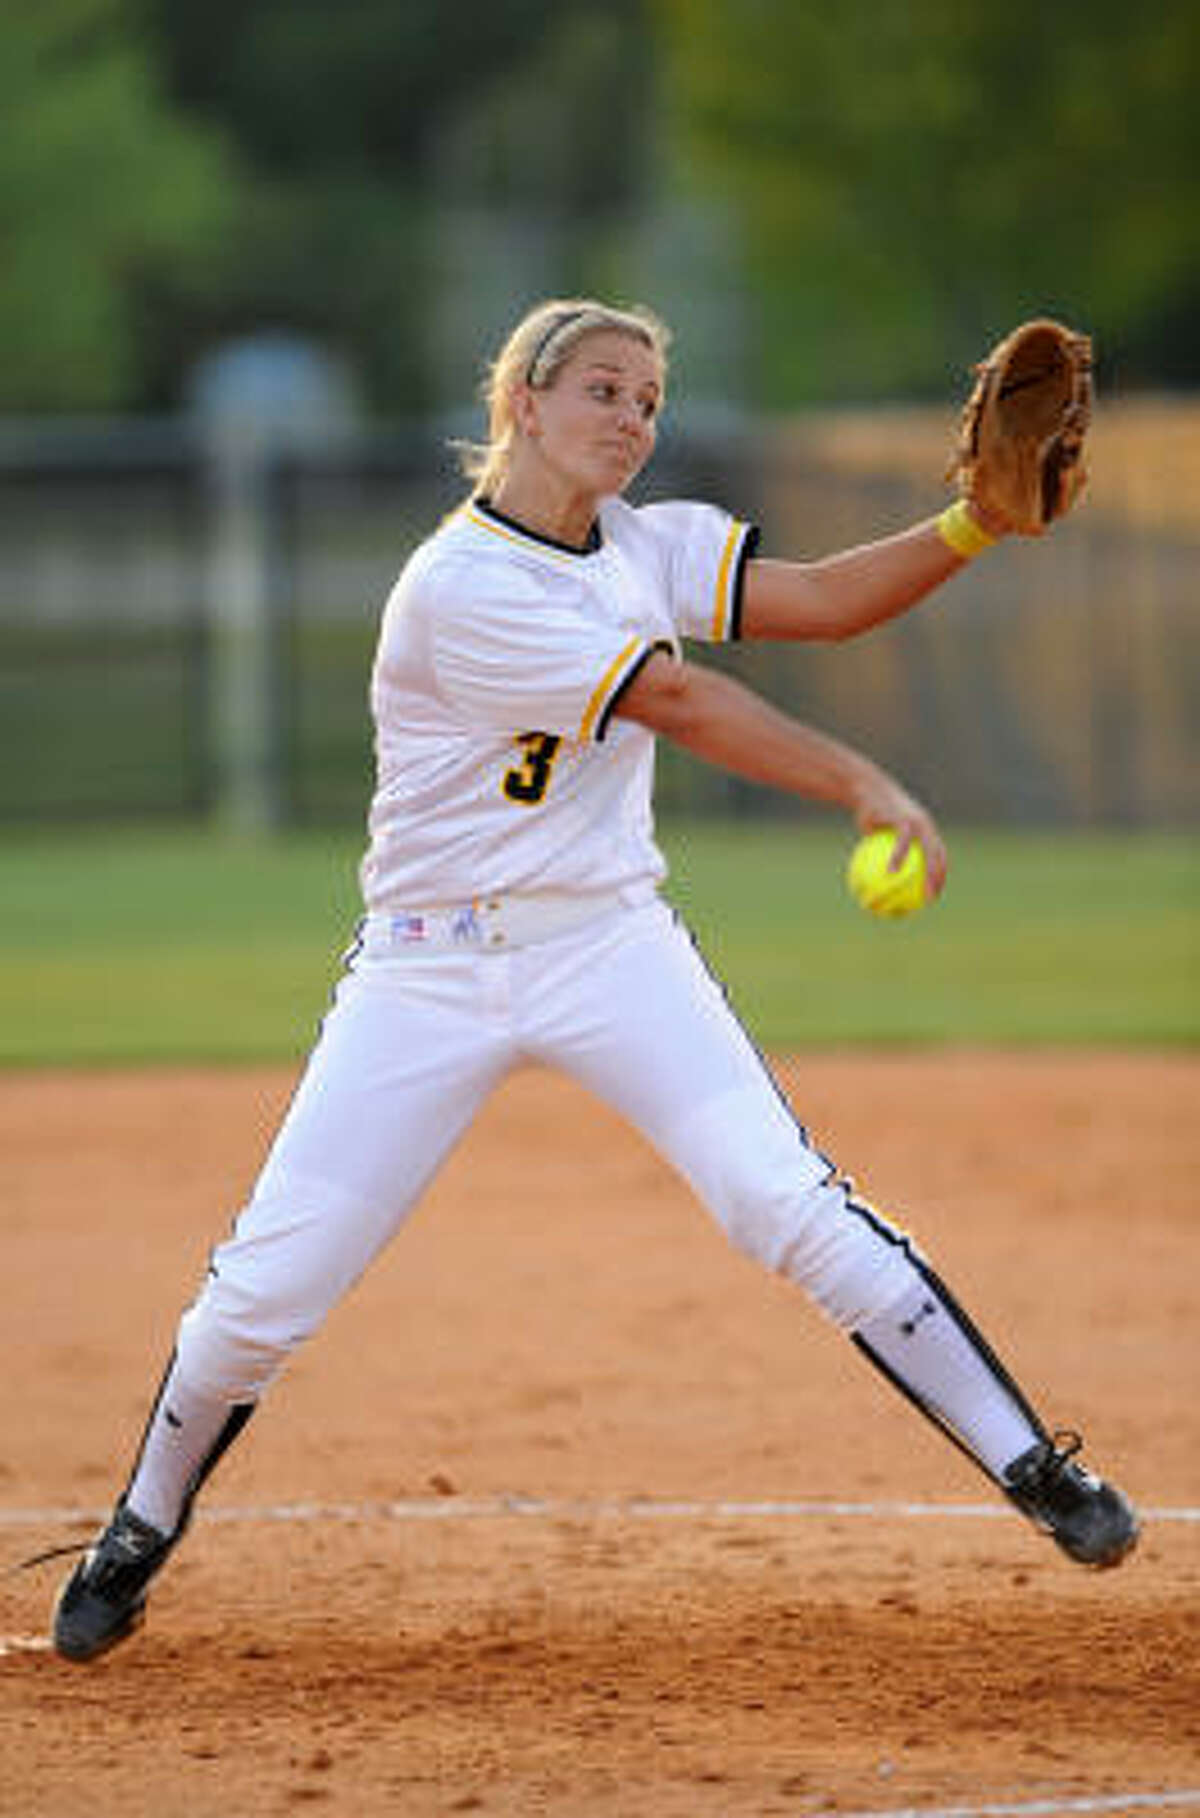 Klein Oak pitcher Bree Brown notched her 22nd win of the season, fanning 10 batters in a 10-0 win over Spring.